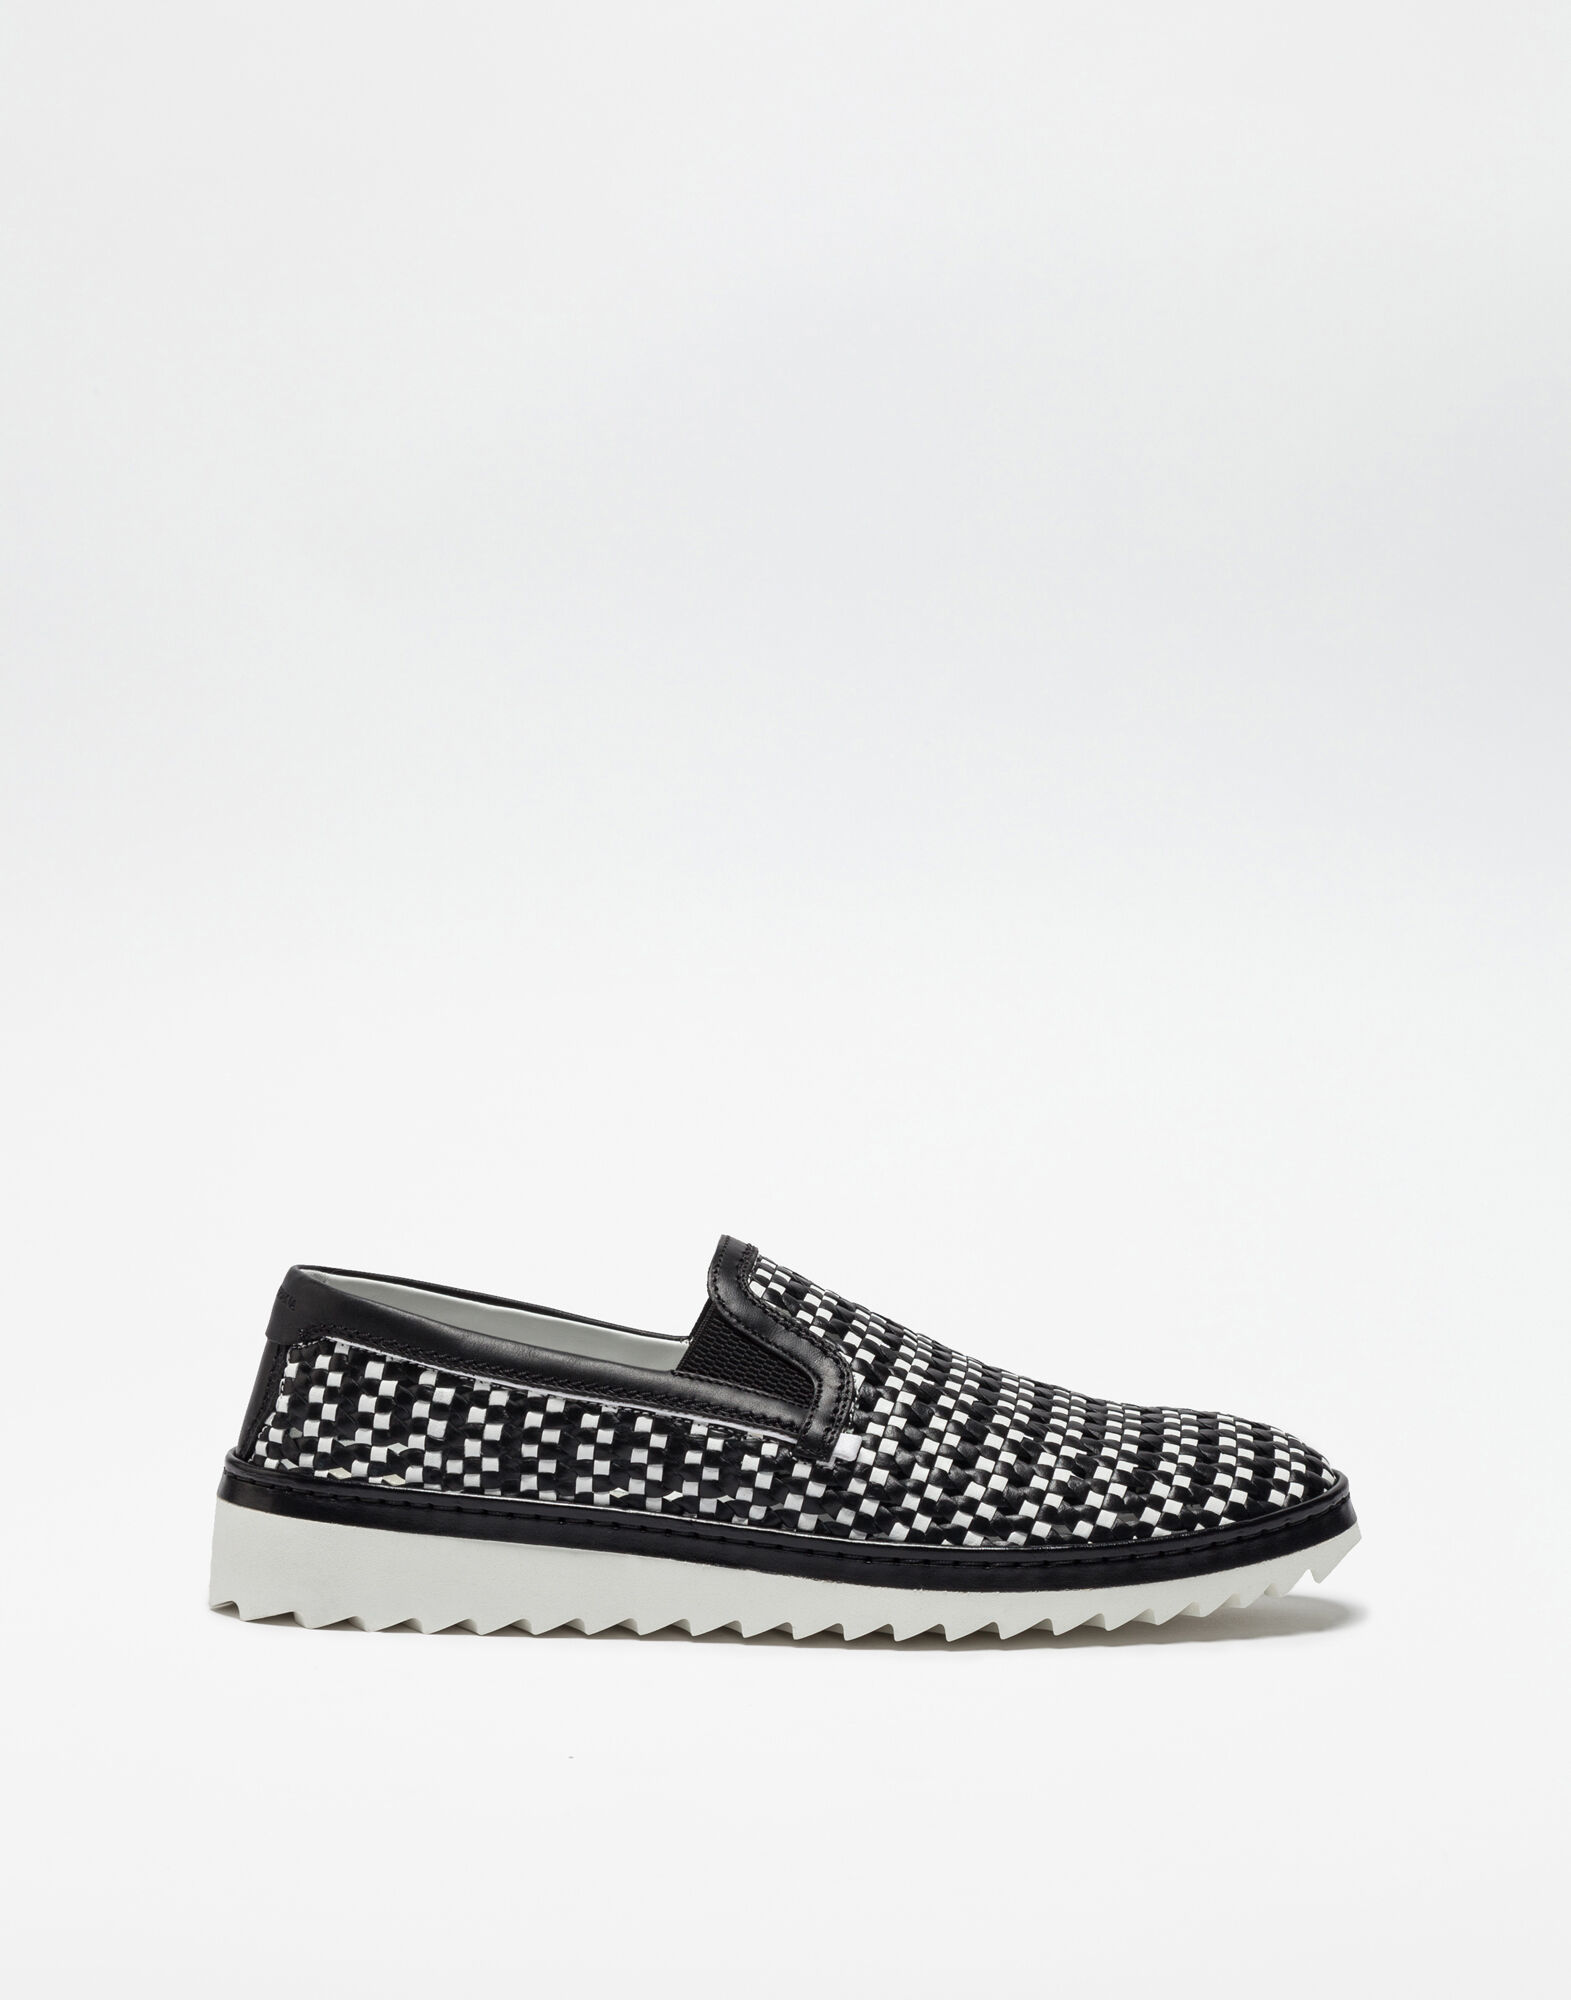 TWO-COLOR SLIP ONS IN BRAIDED LEATHER